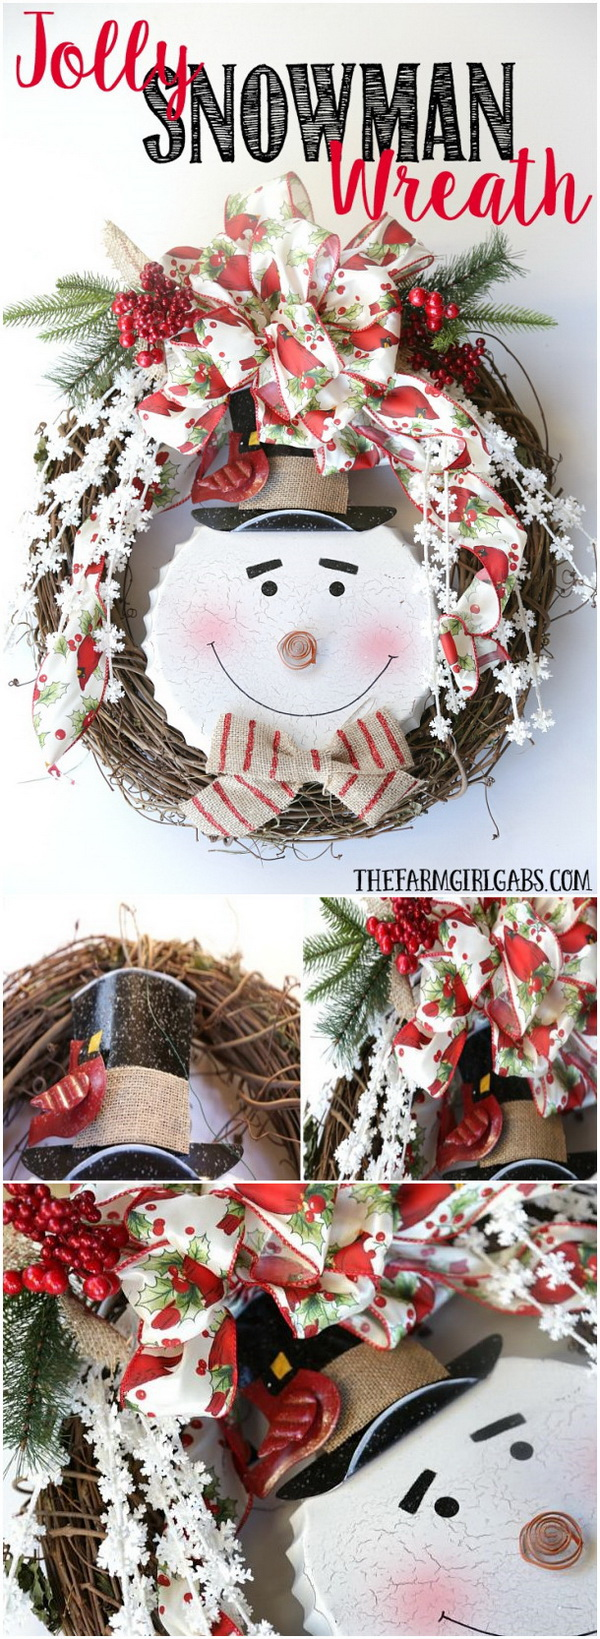 Jolly Snowman Christmas Wreath. DIY wreath is a great project to dress up an empty wall or garage door for the holiday season. This jolly snowman Christmas wreath can be made with scratch arround your home and will create a warm and inviting scent for the holidays when hung on the outside of your front door or inside of your home.